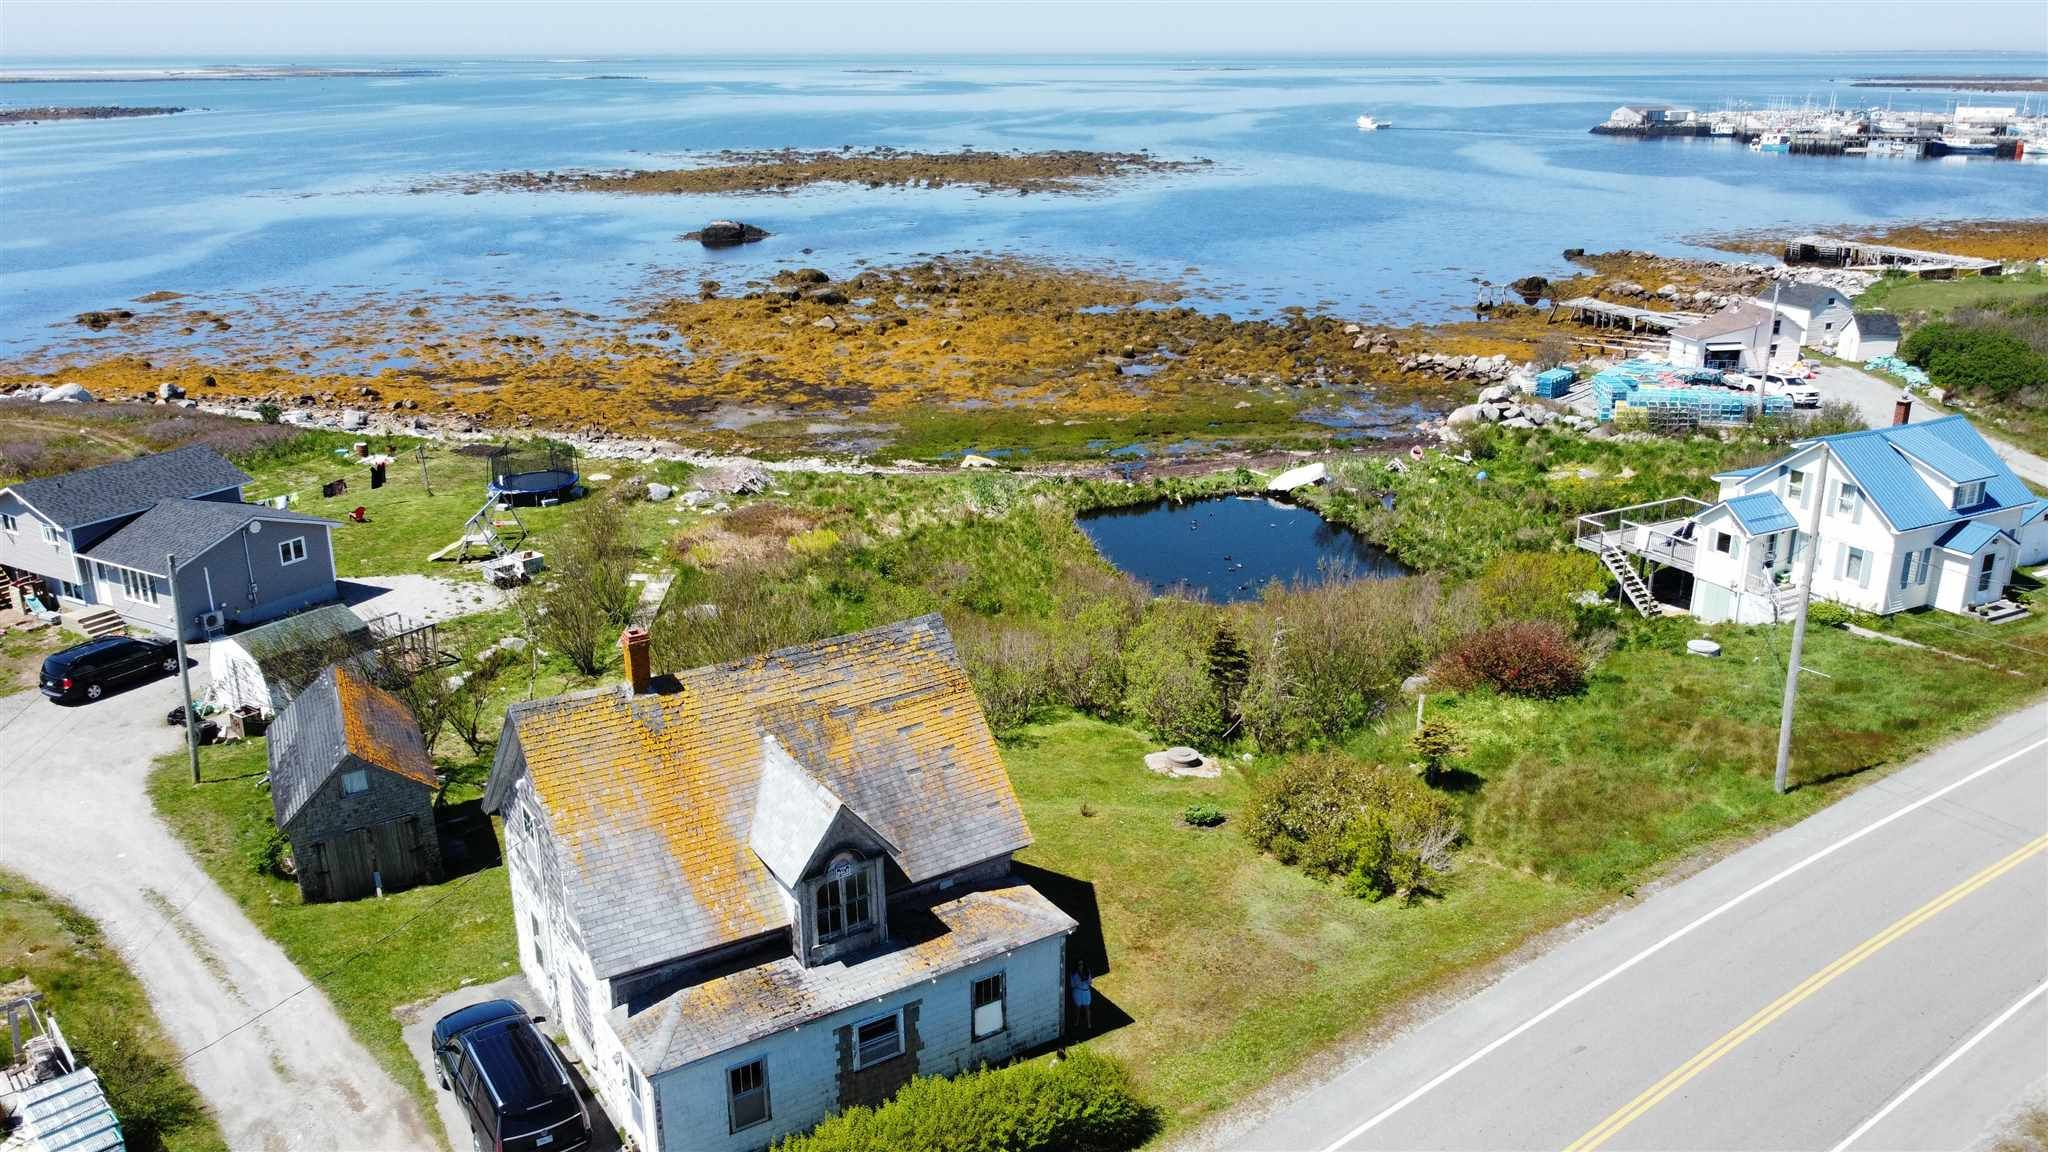 Main Photo: 2844 Main Street in Clark's Harbour: 407-Shelburne County Residential for sale (South Shore)  : MLS®# 202113865